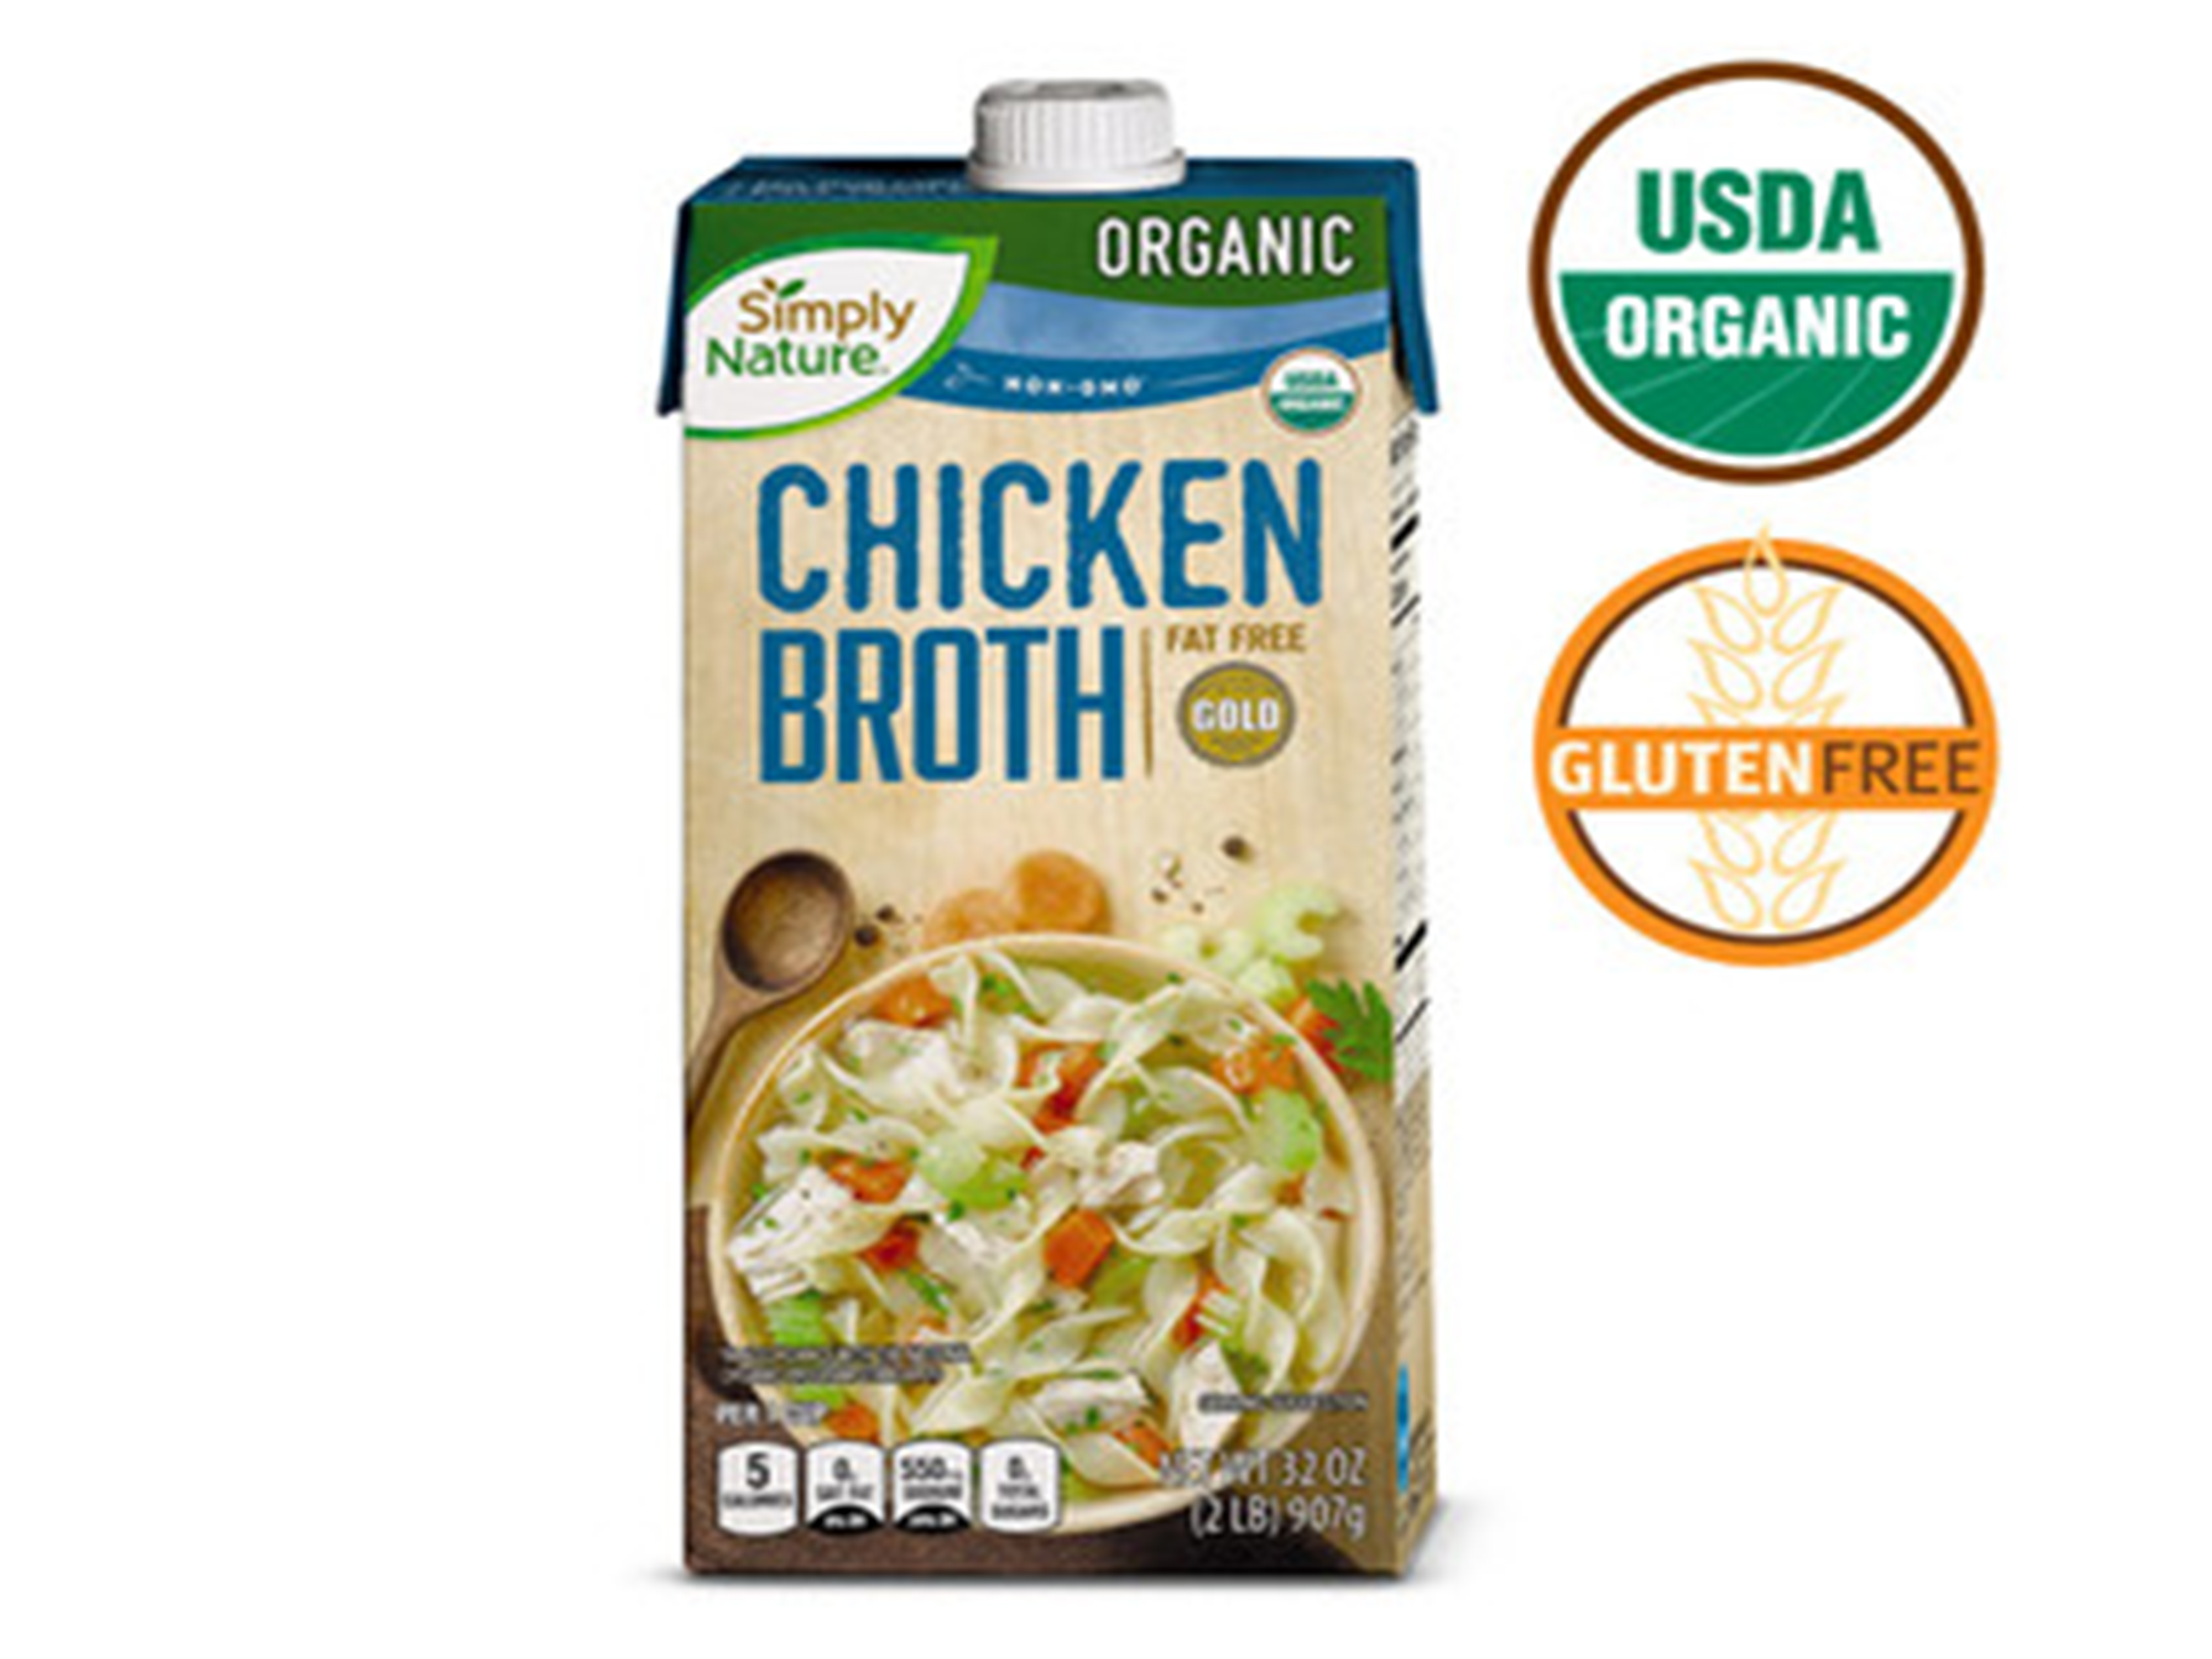 Favorite Pantry Staple: Simply Nature Organic Chicken Broth or Low Sodium Chicken Broth